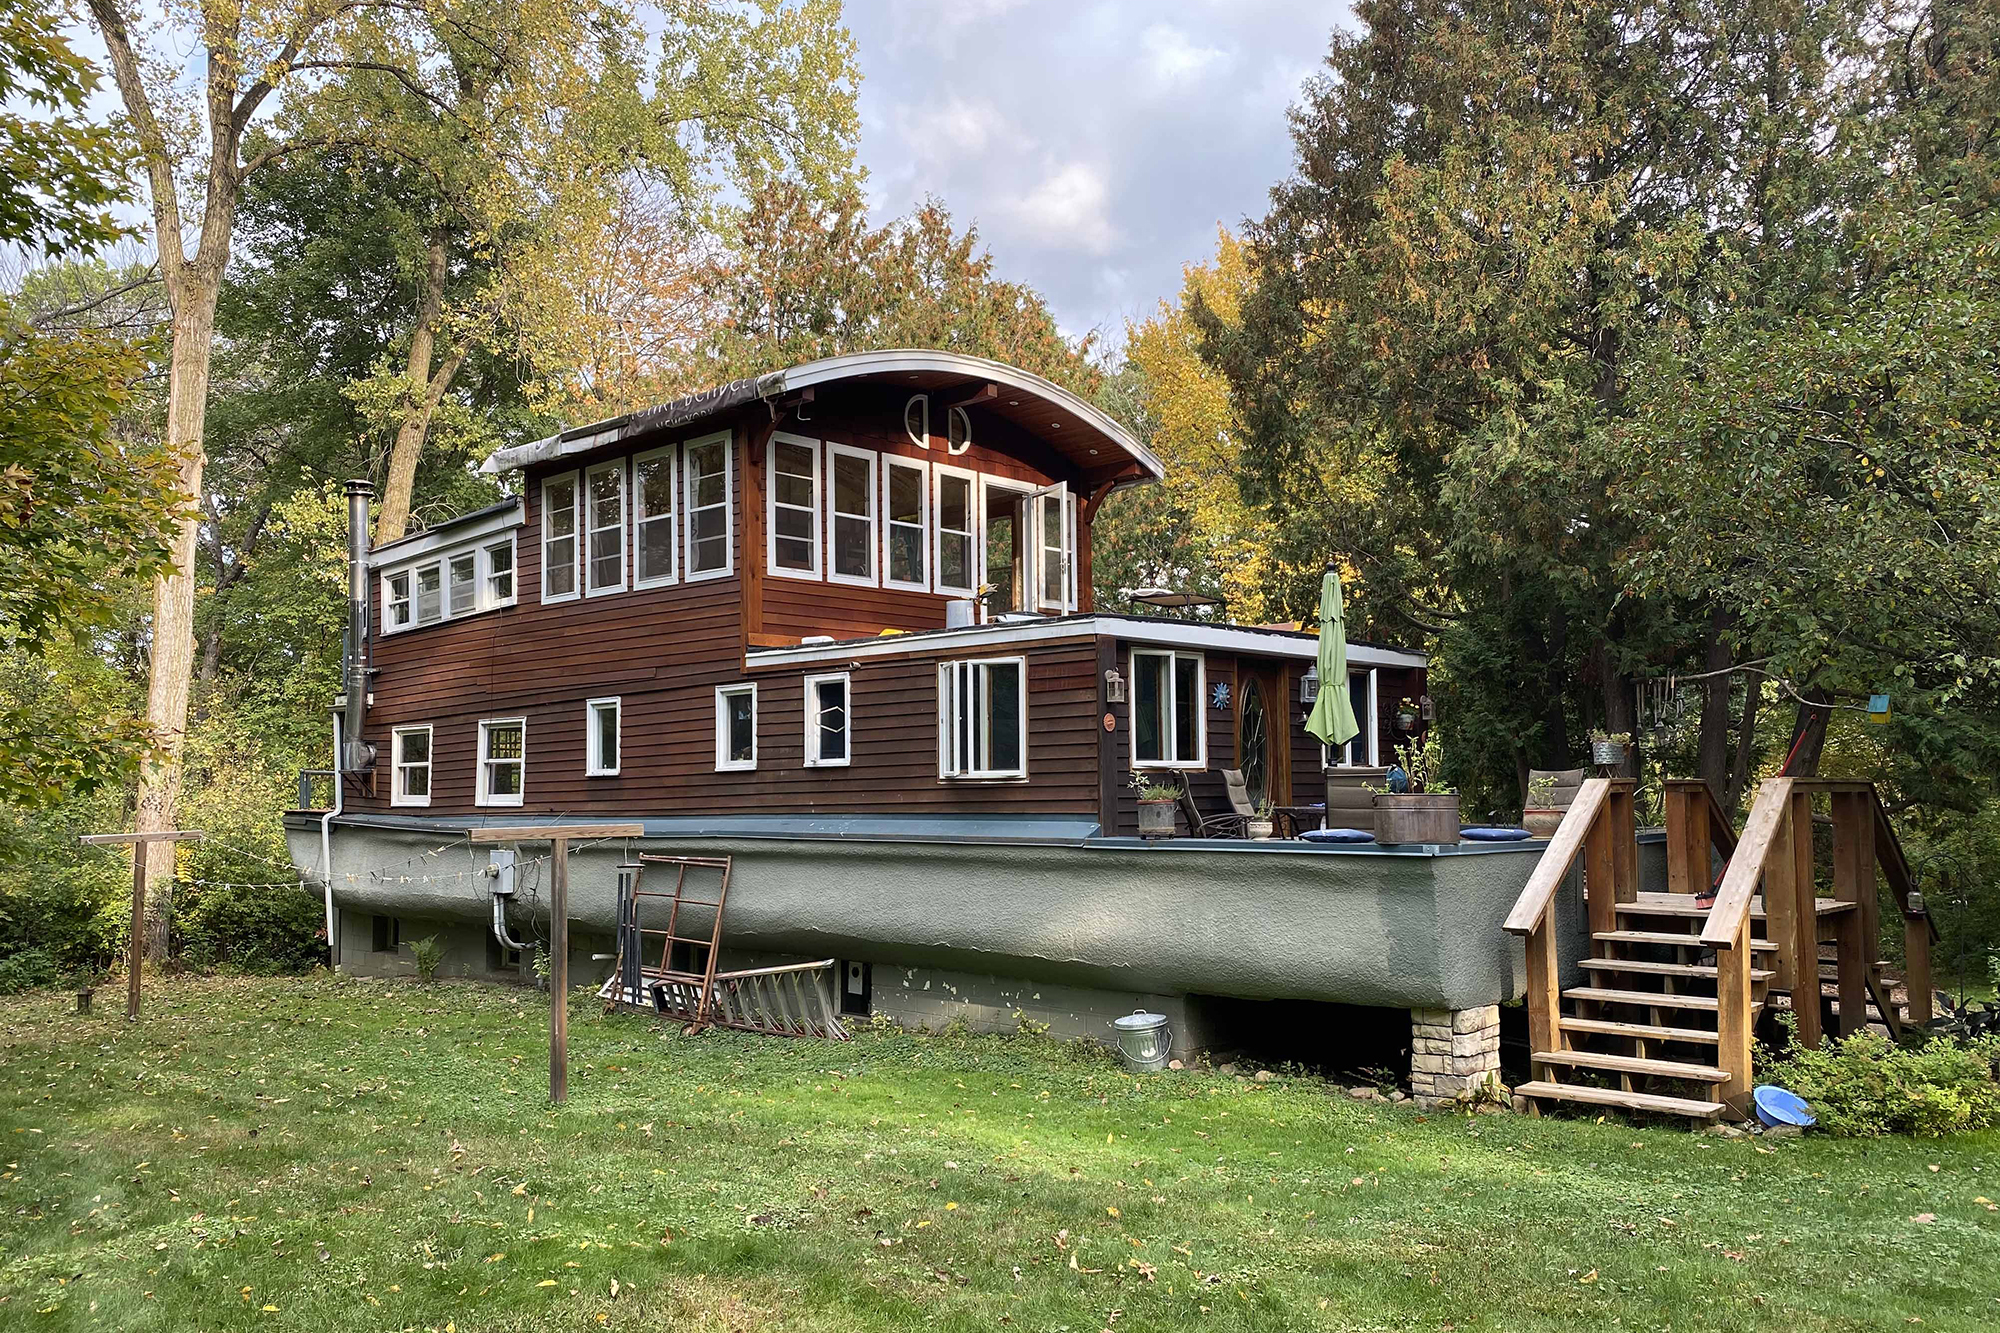 Woman gives tour of wild Minnesota house that was a boat